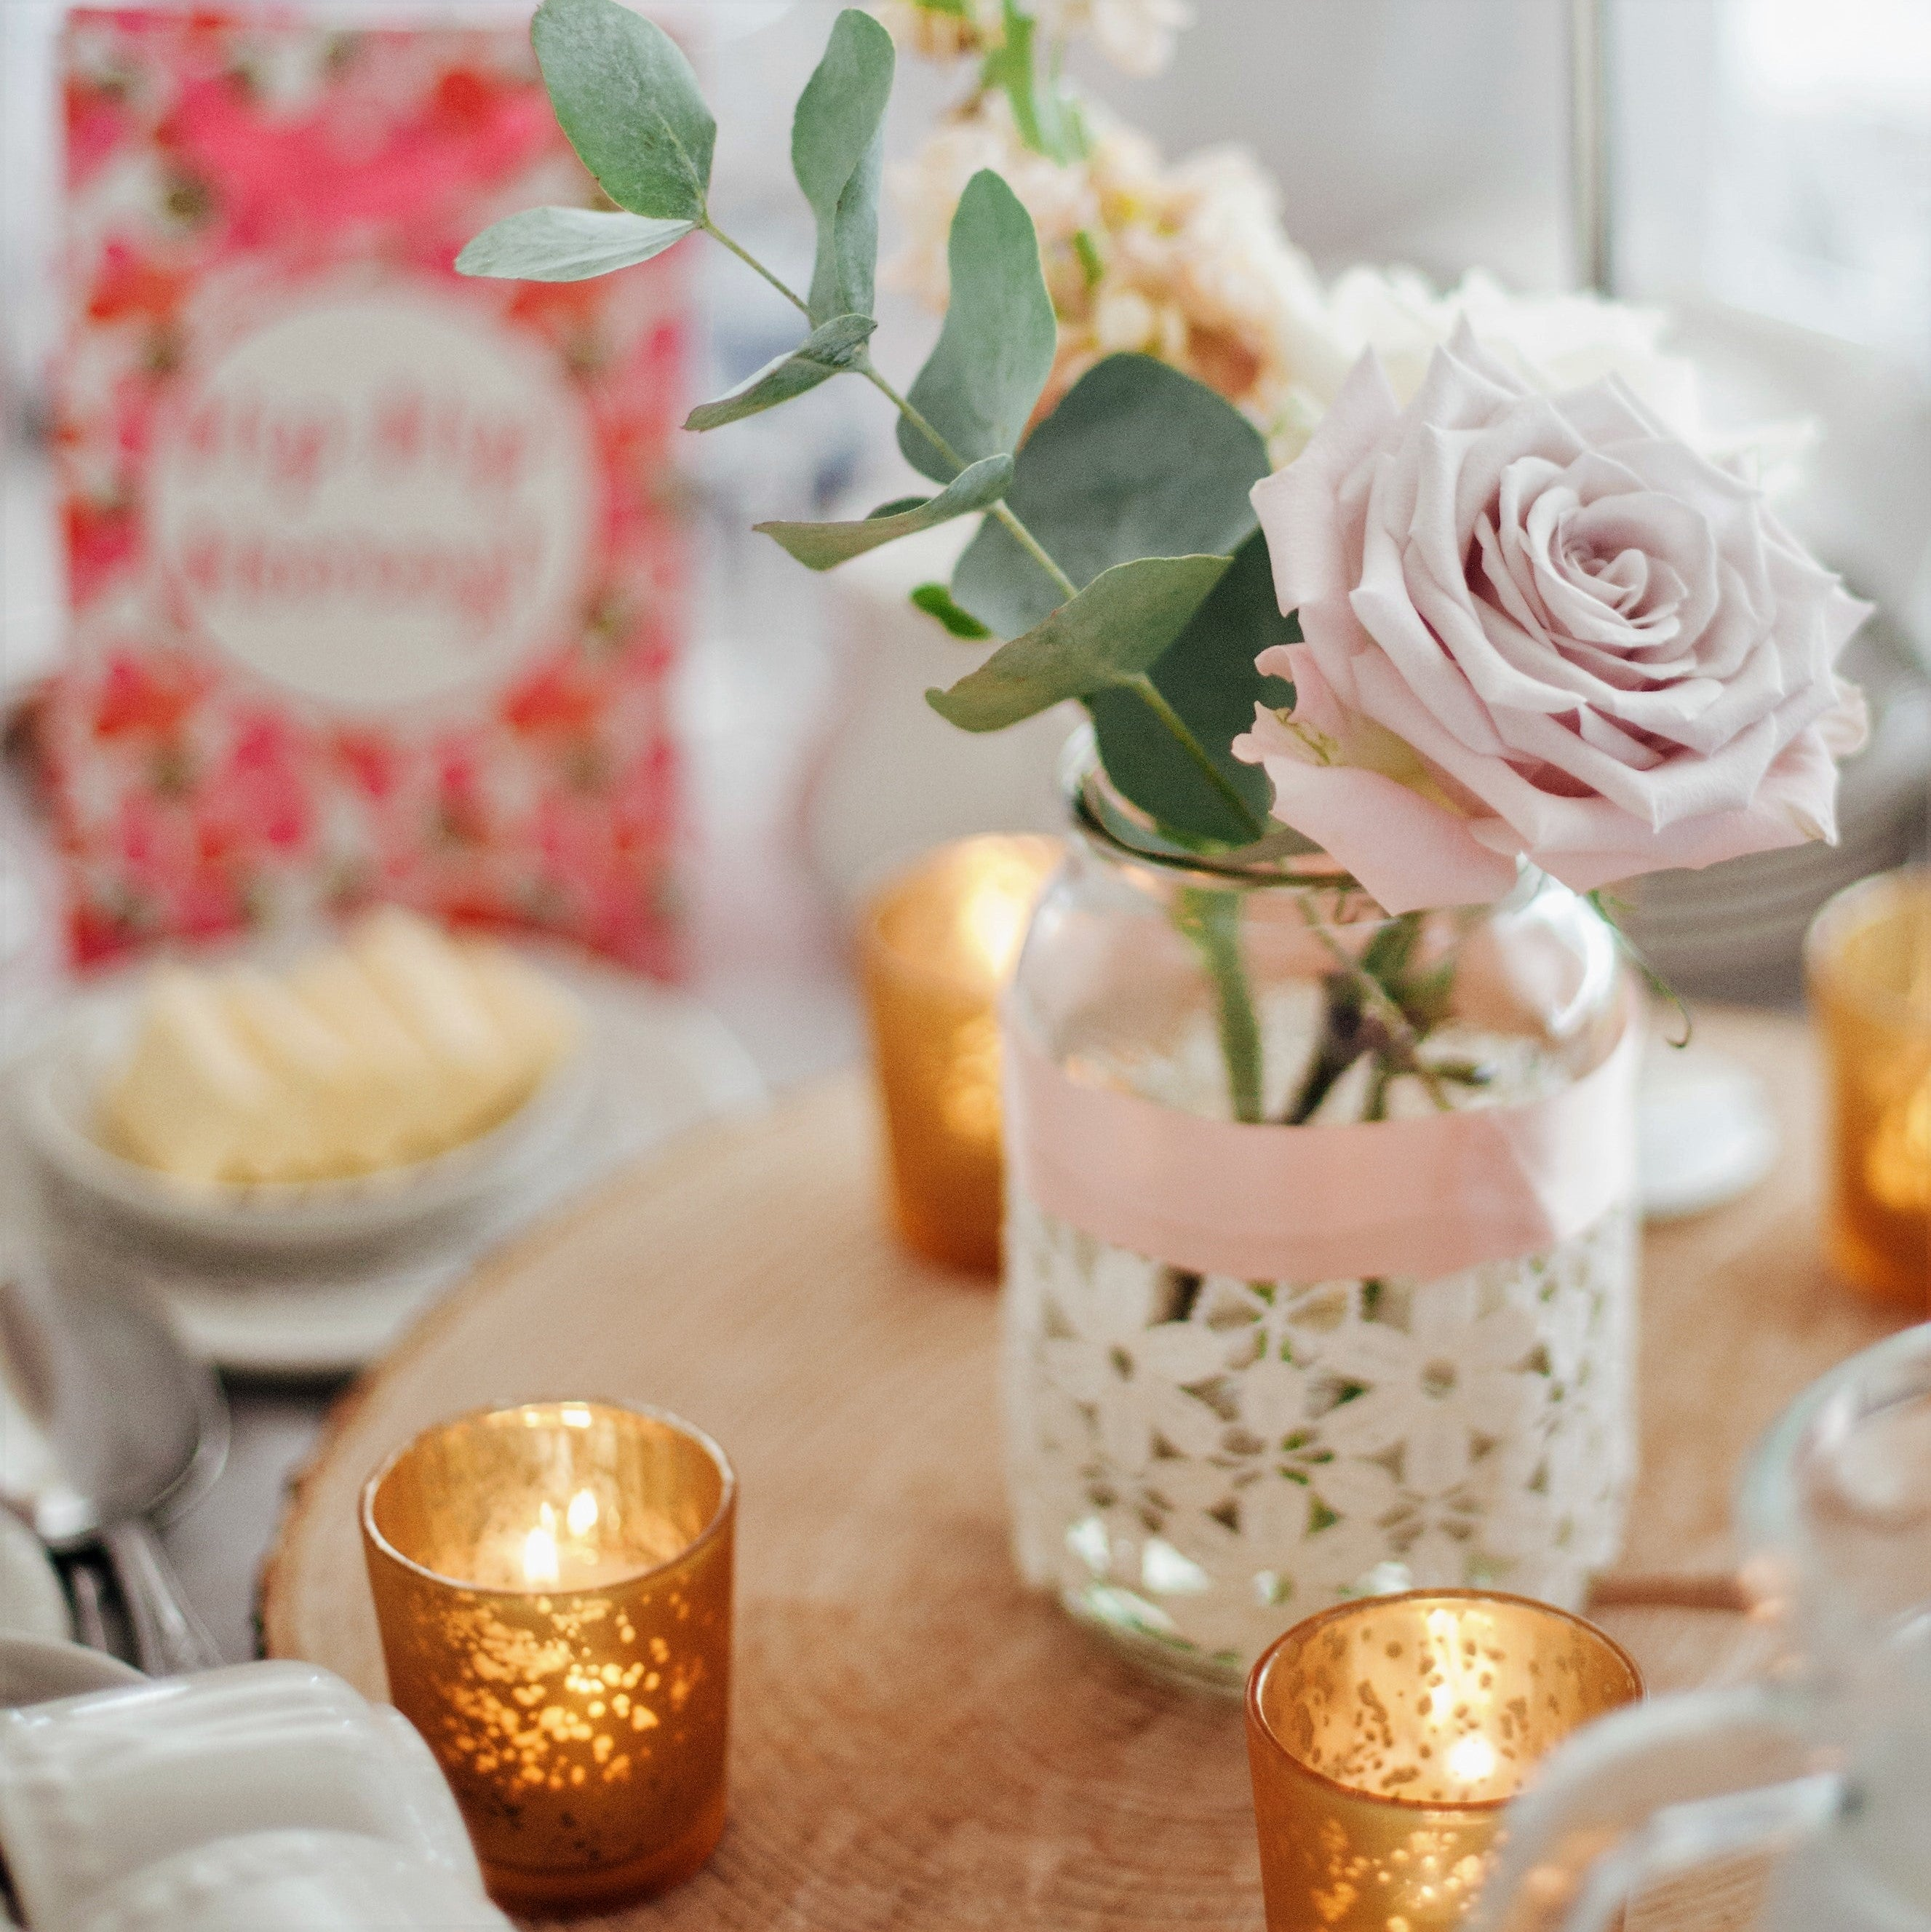 Online delivery of Flowers and Candles - A perfect combo!